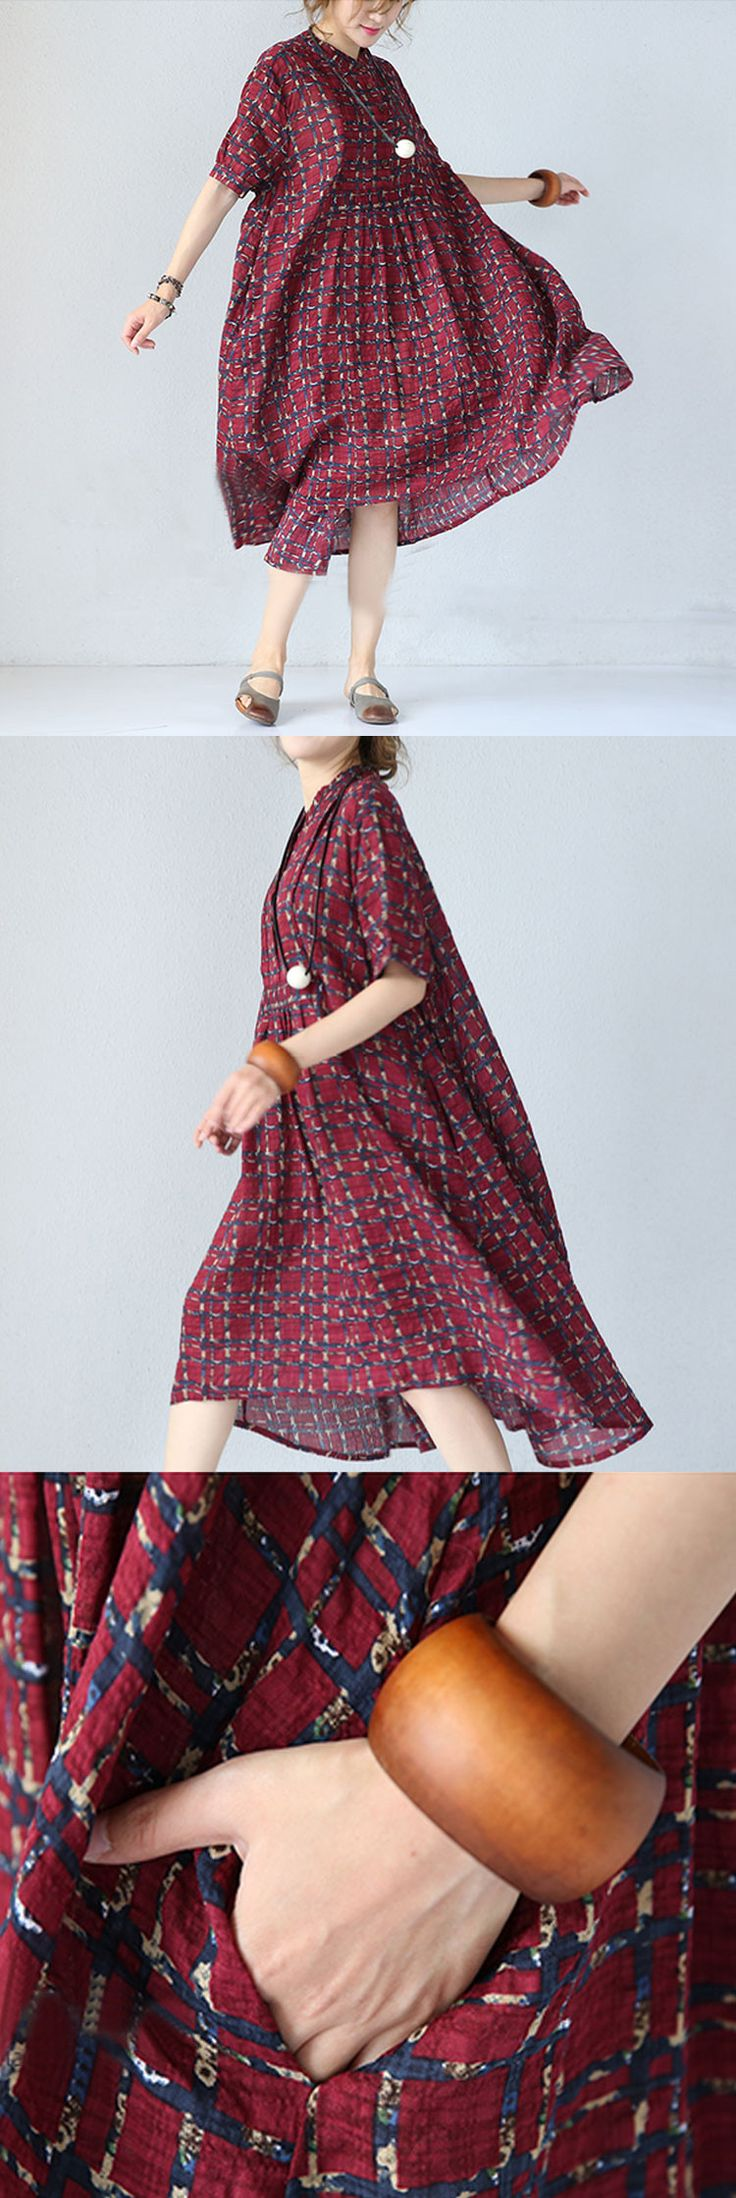 Bang!!! Perfect dress for change ur morning mood.It's a kinda of Bohemian style with pure linen&cotton material.Floral printed red long dress ,soo refreshing look.Do u think so? wanna hava a try.welcome to buykud.com